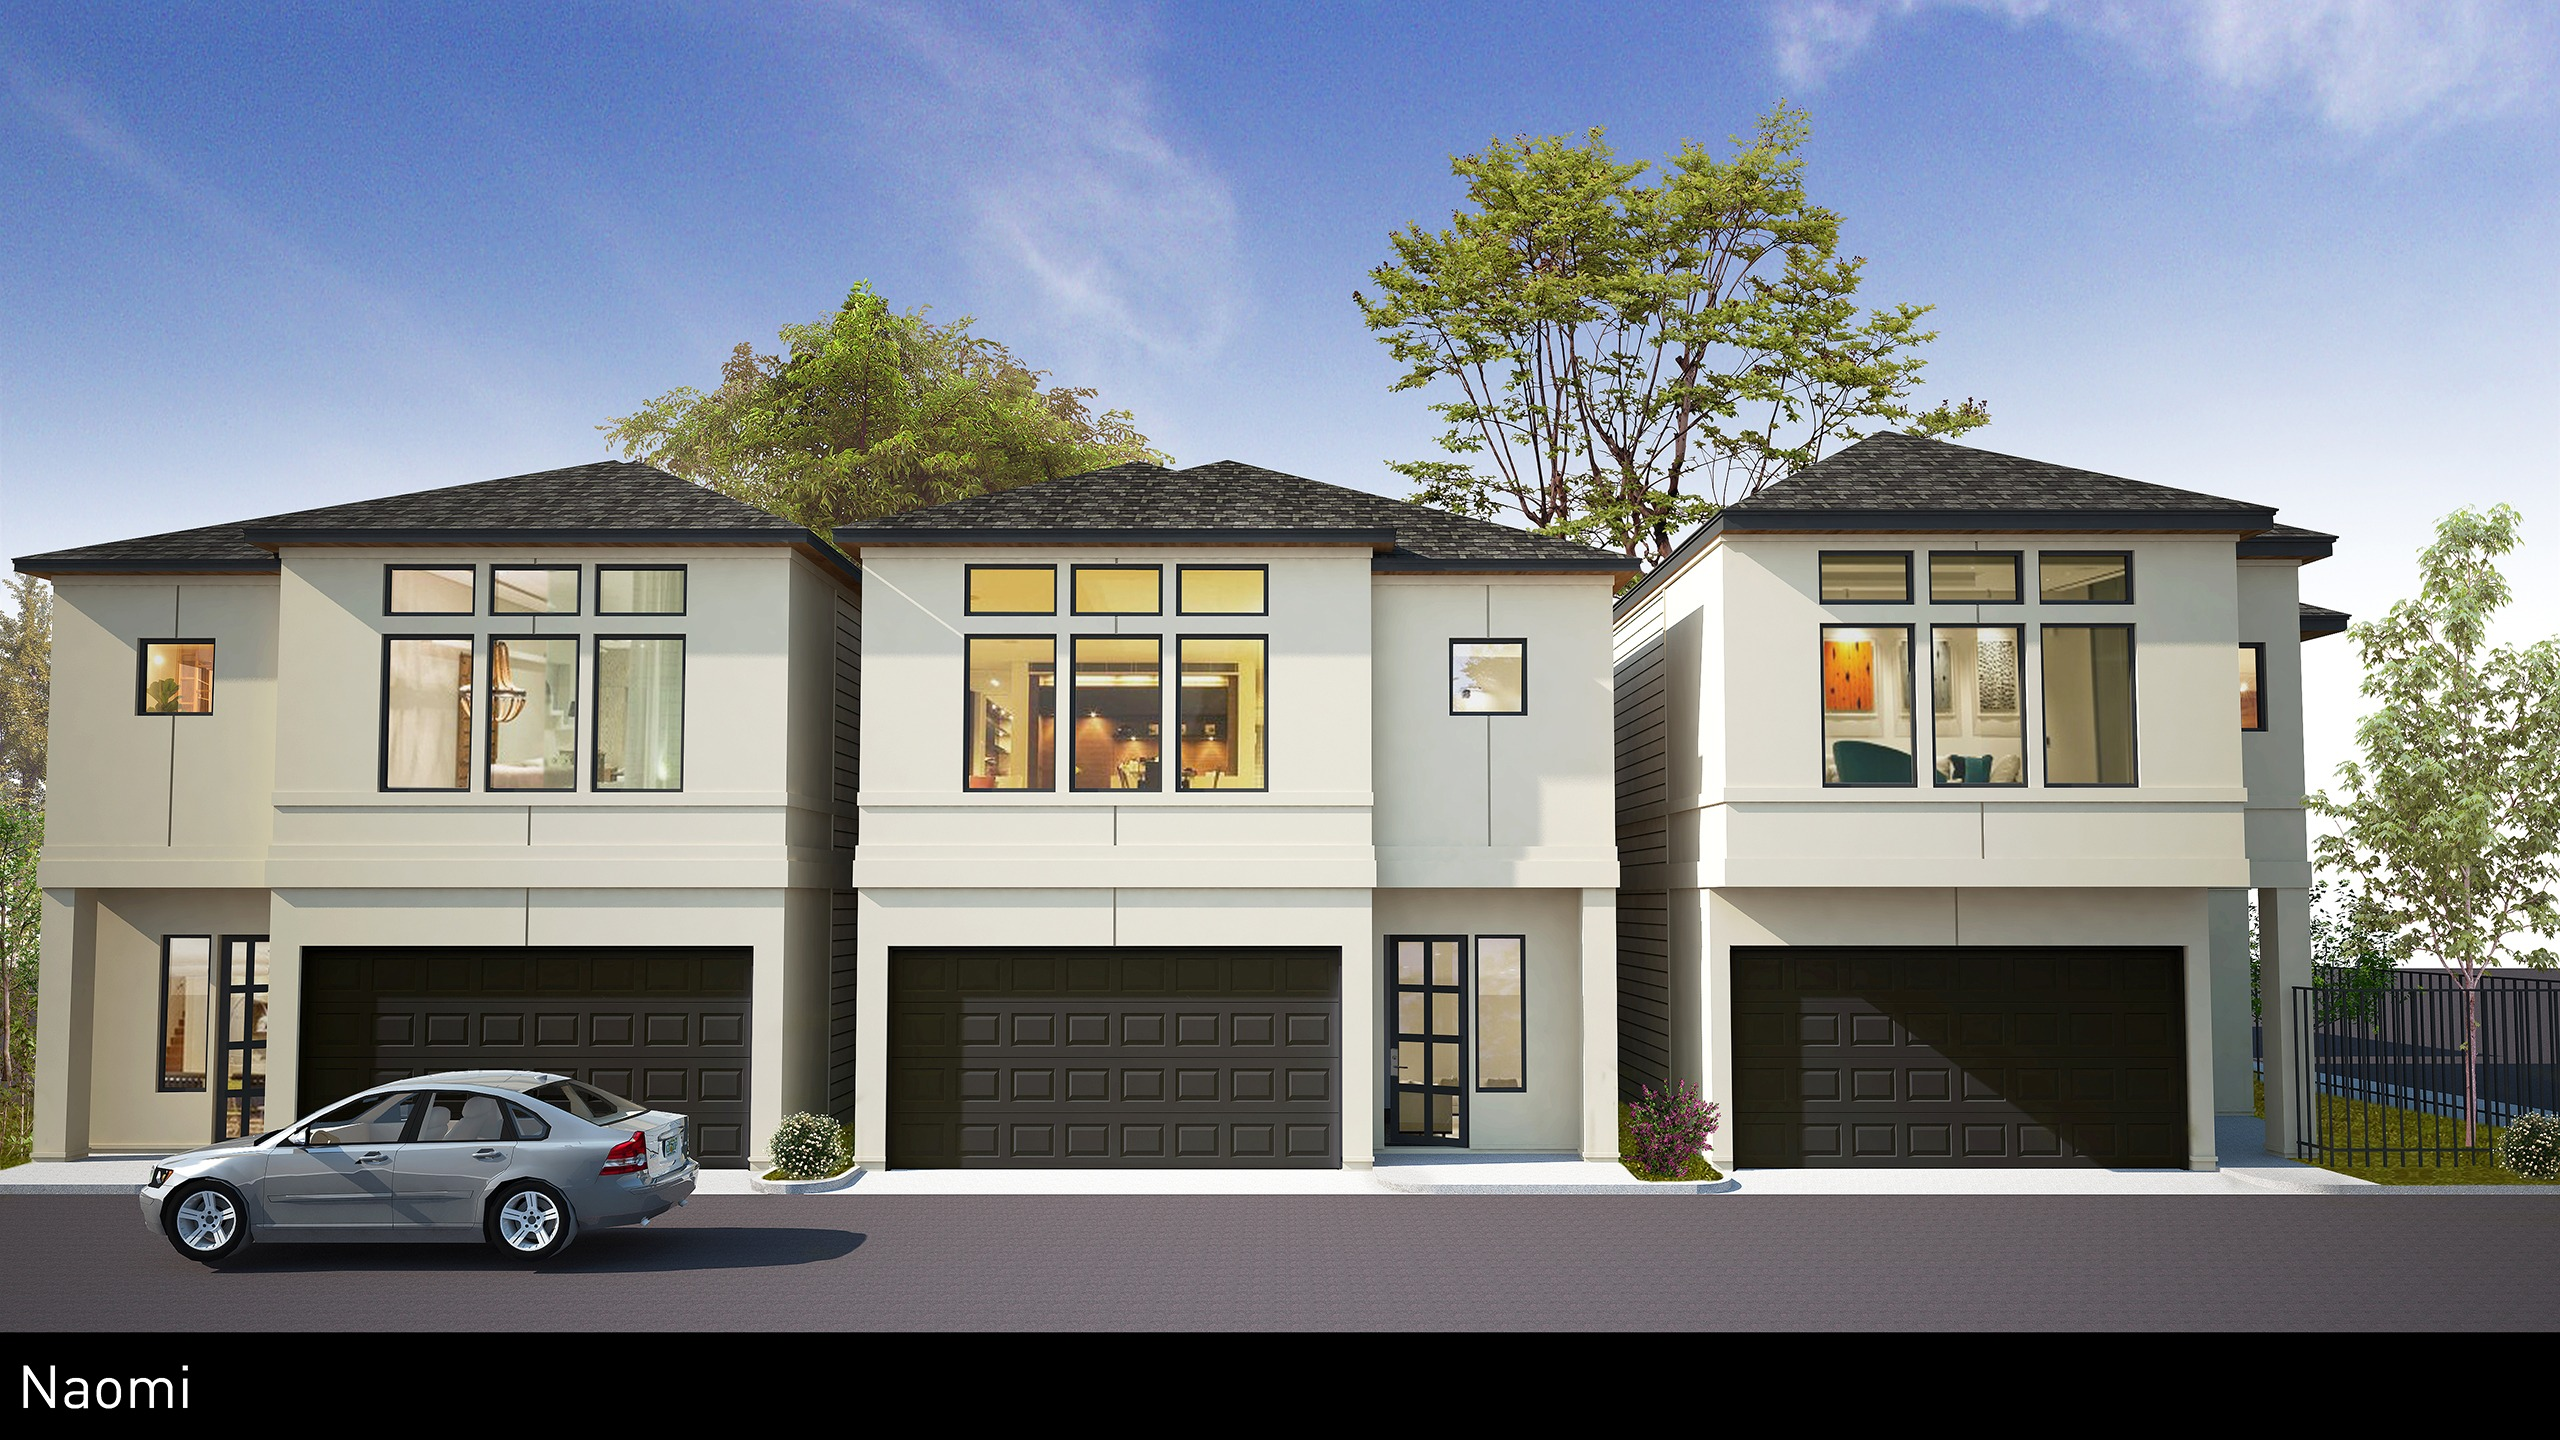 Another new construction financed by GL&L Holdings